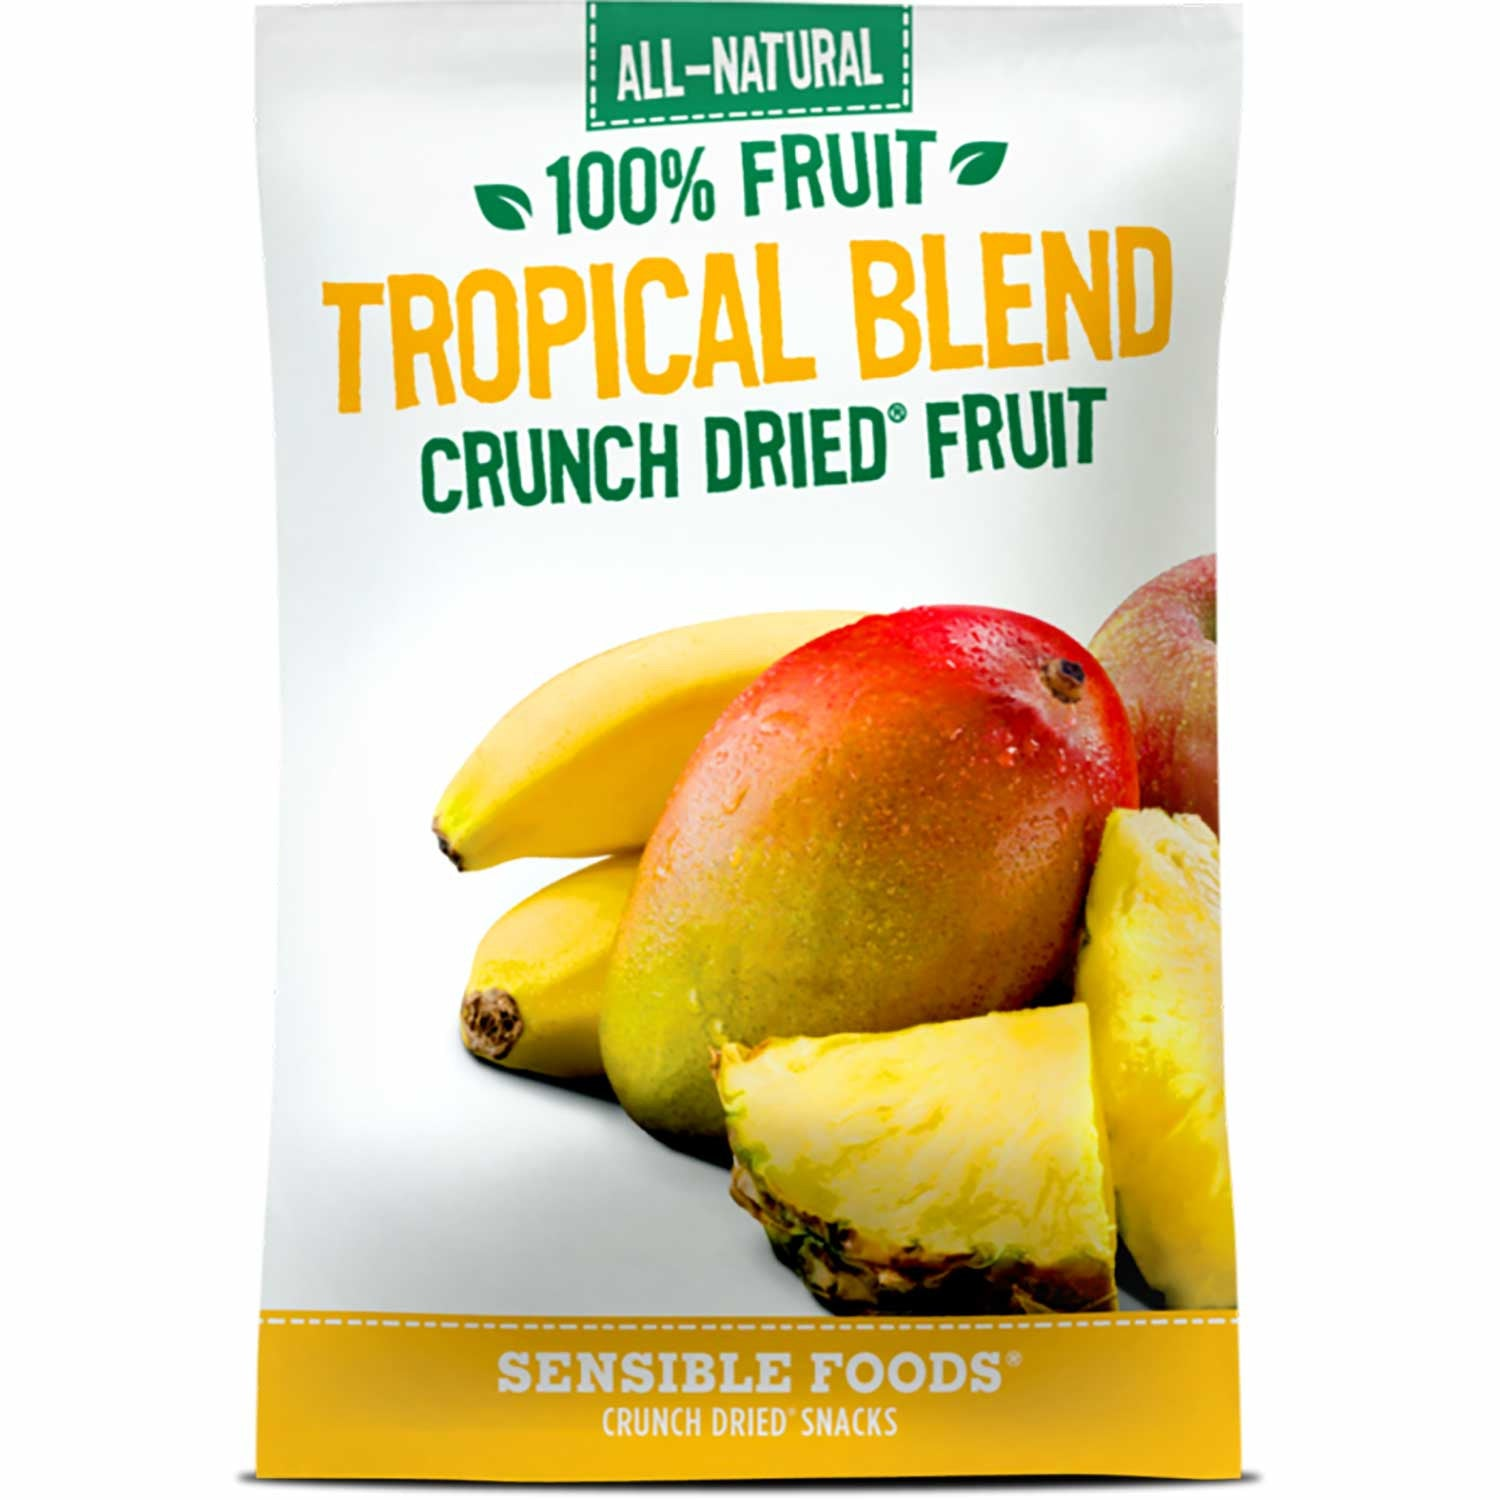 Sensible Foods All-Natural 100% Fruit Tropical Blend Crunch Dried Fruit, 9g.-NaturesWisdom